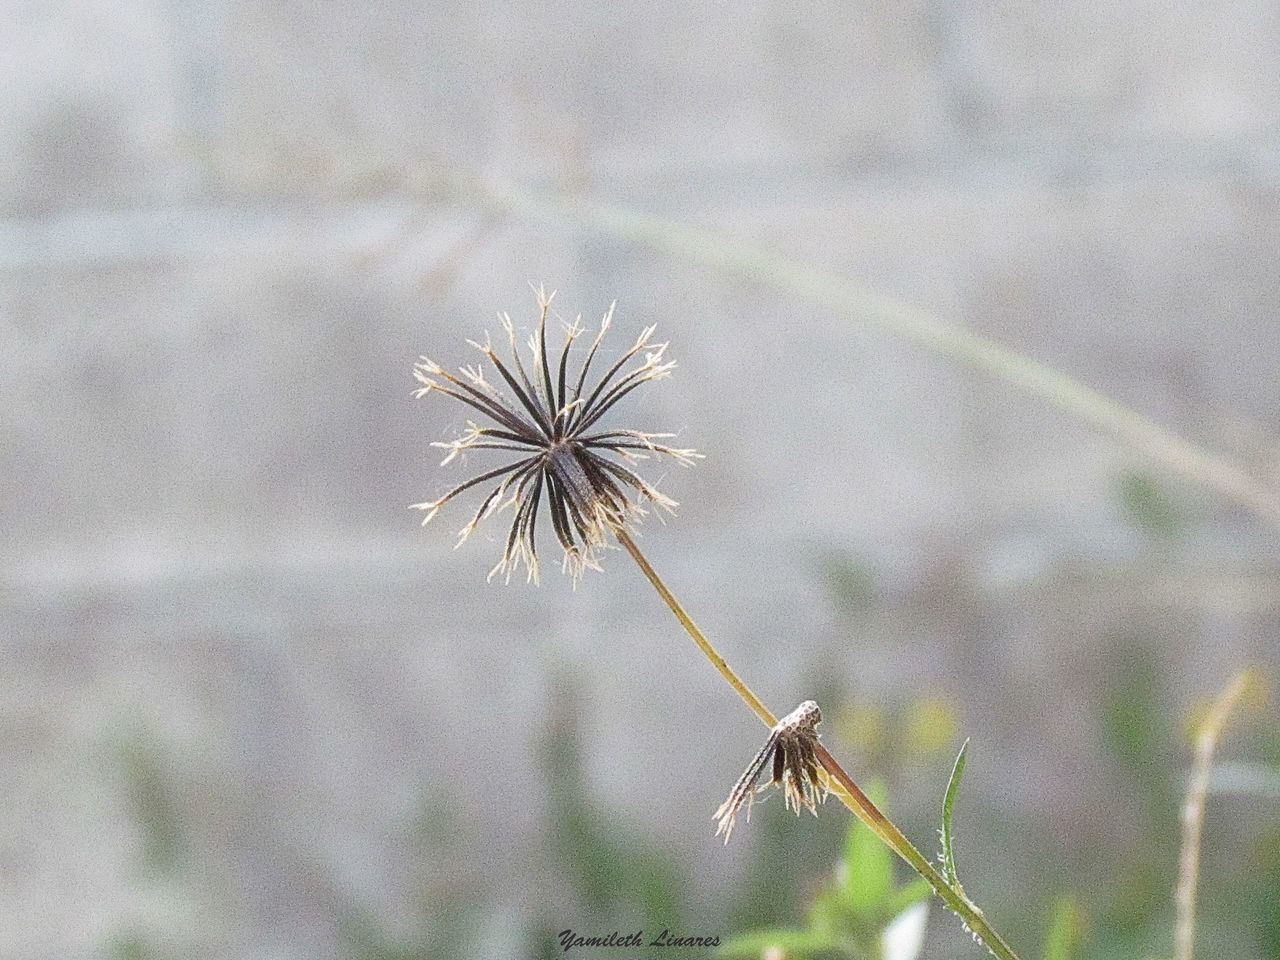 flower, fragility, focus on foreground, nature, day, plant, growth, outdoors, beauty in nature, no people, freshness, flower head, close-up